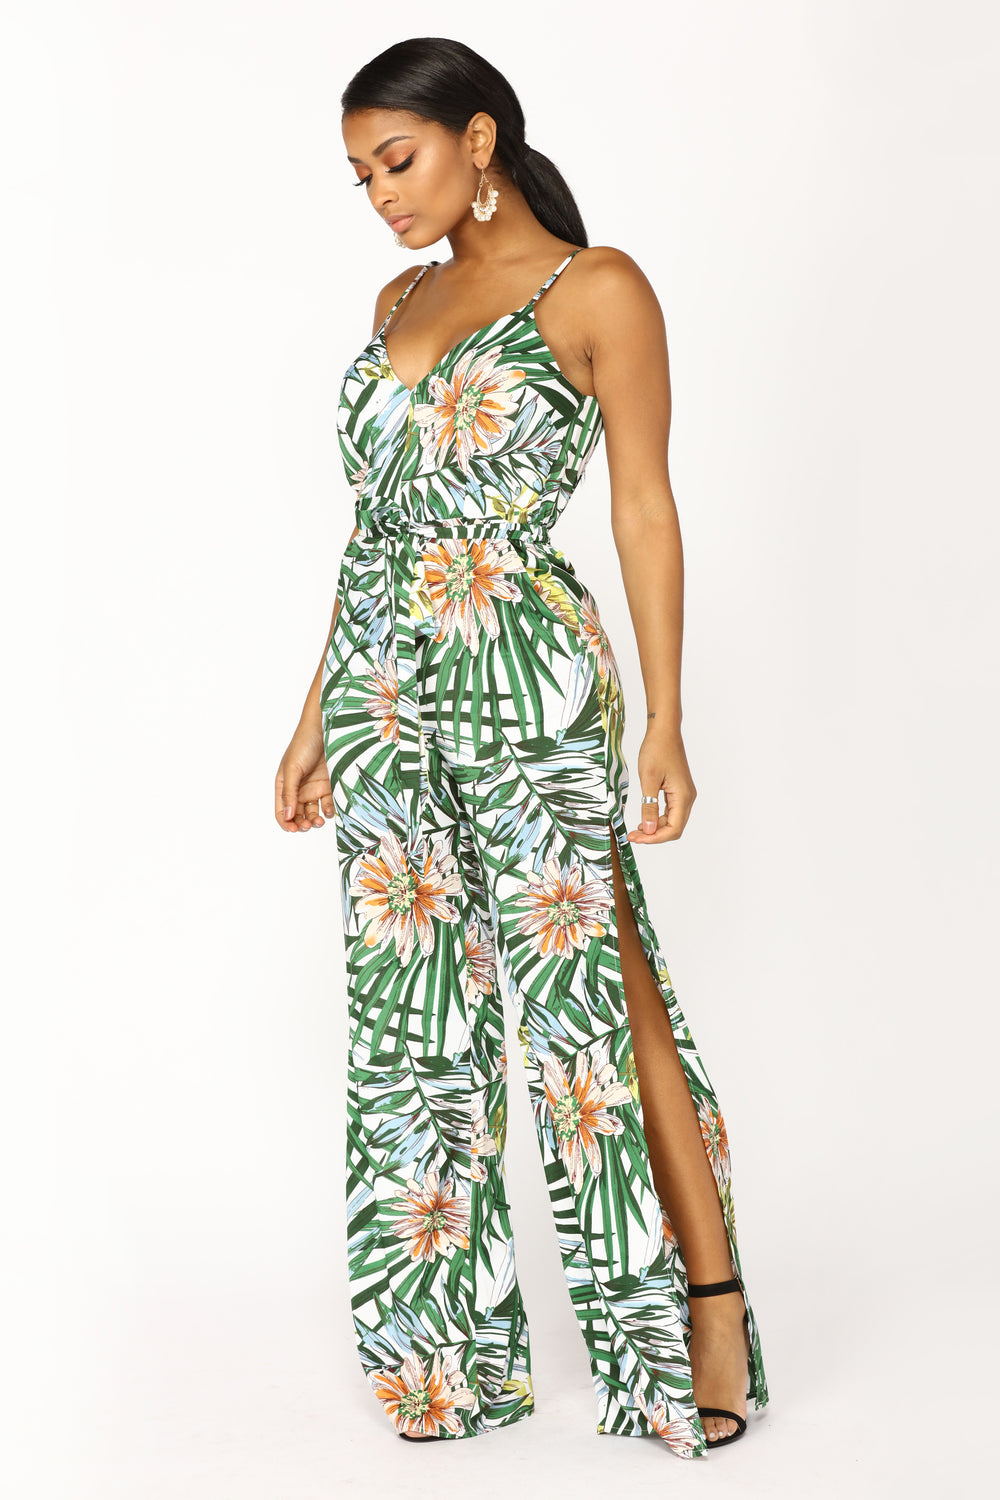 I'm Your Babe Tonight Jumpsuit - Green